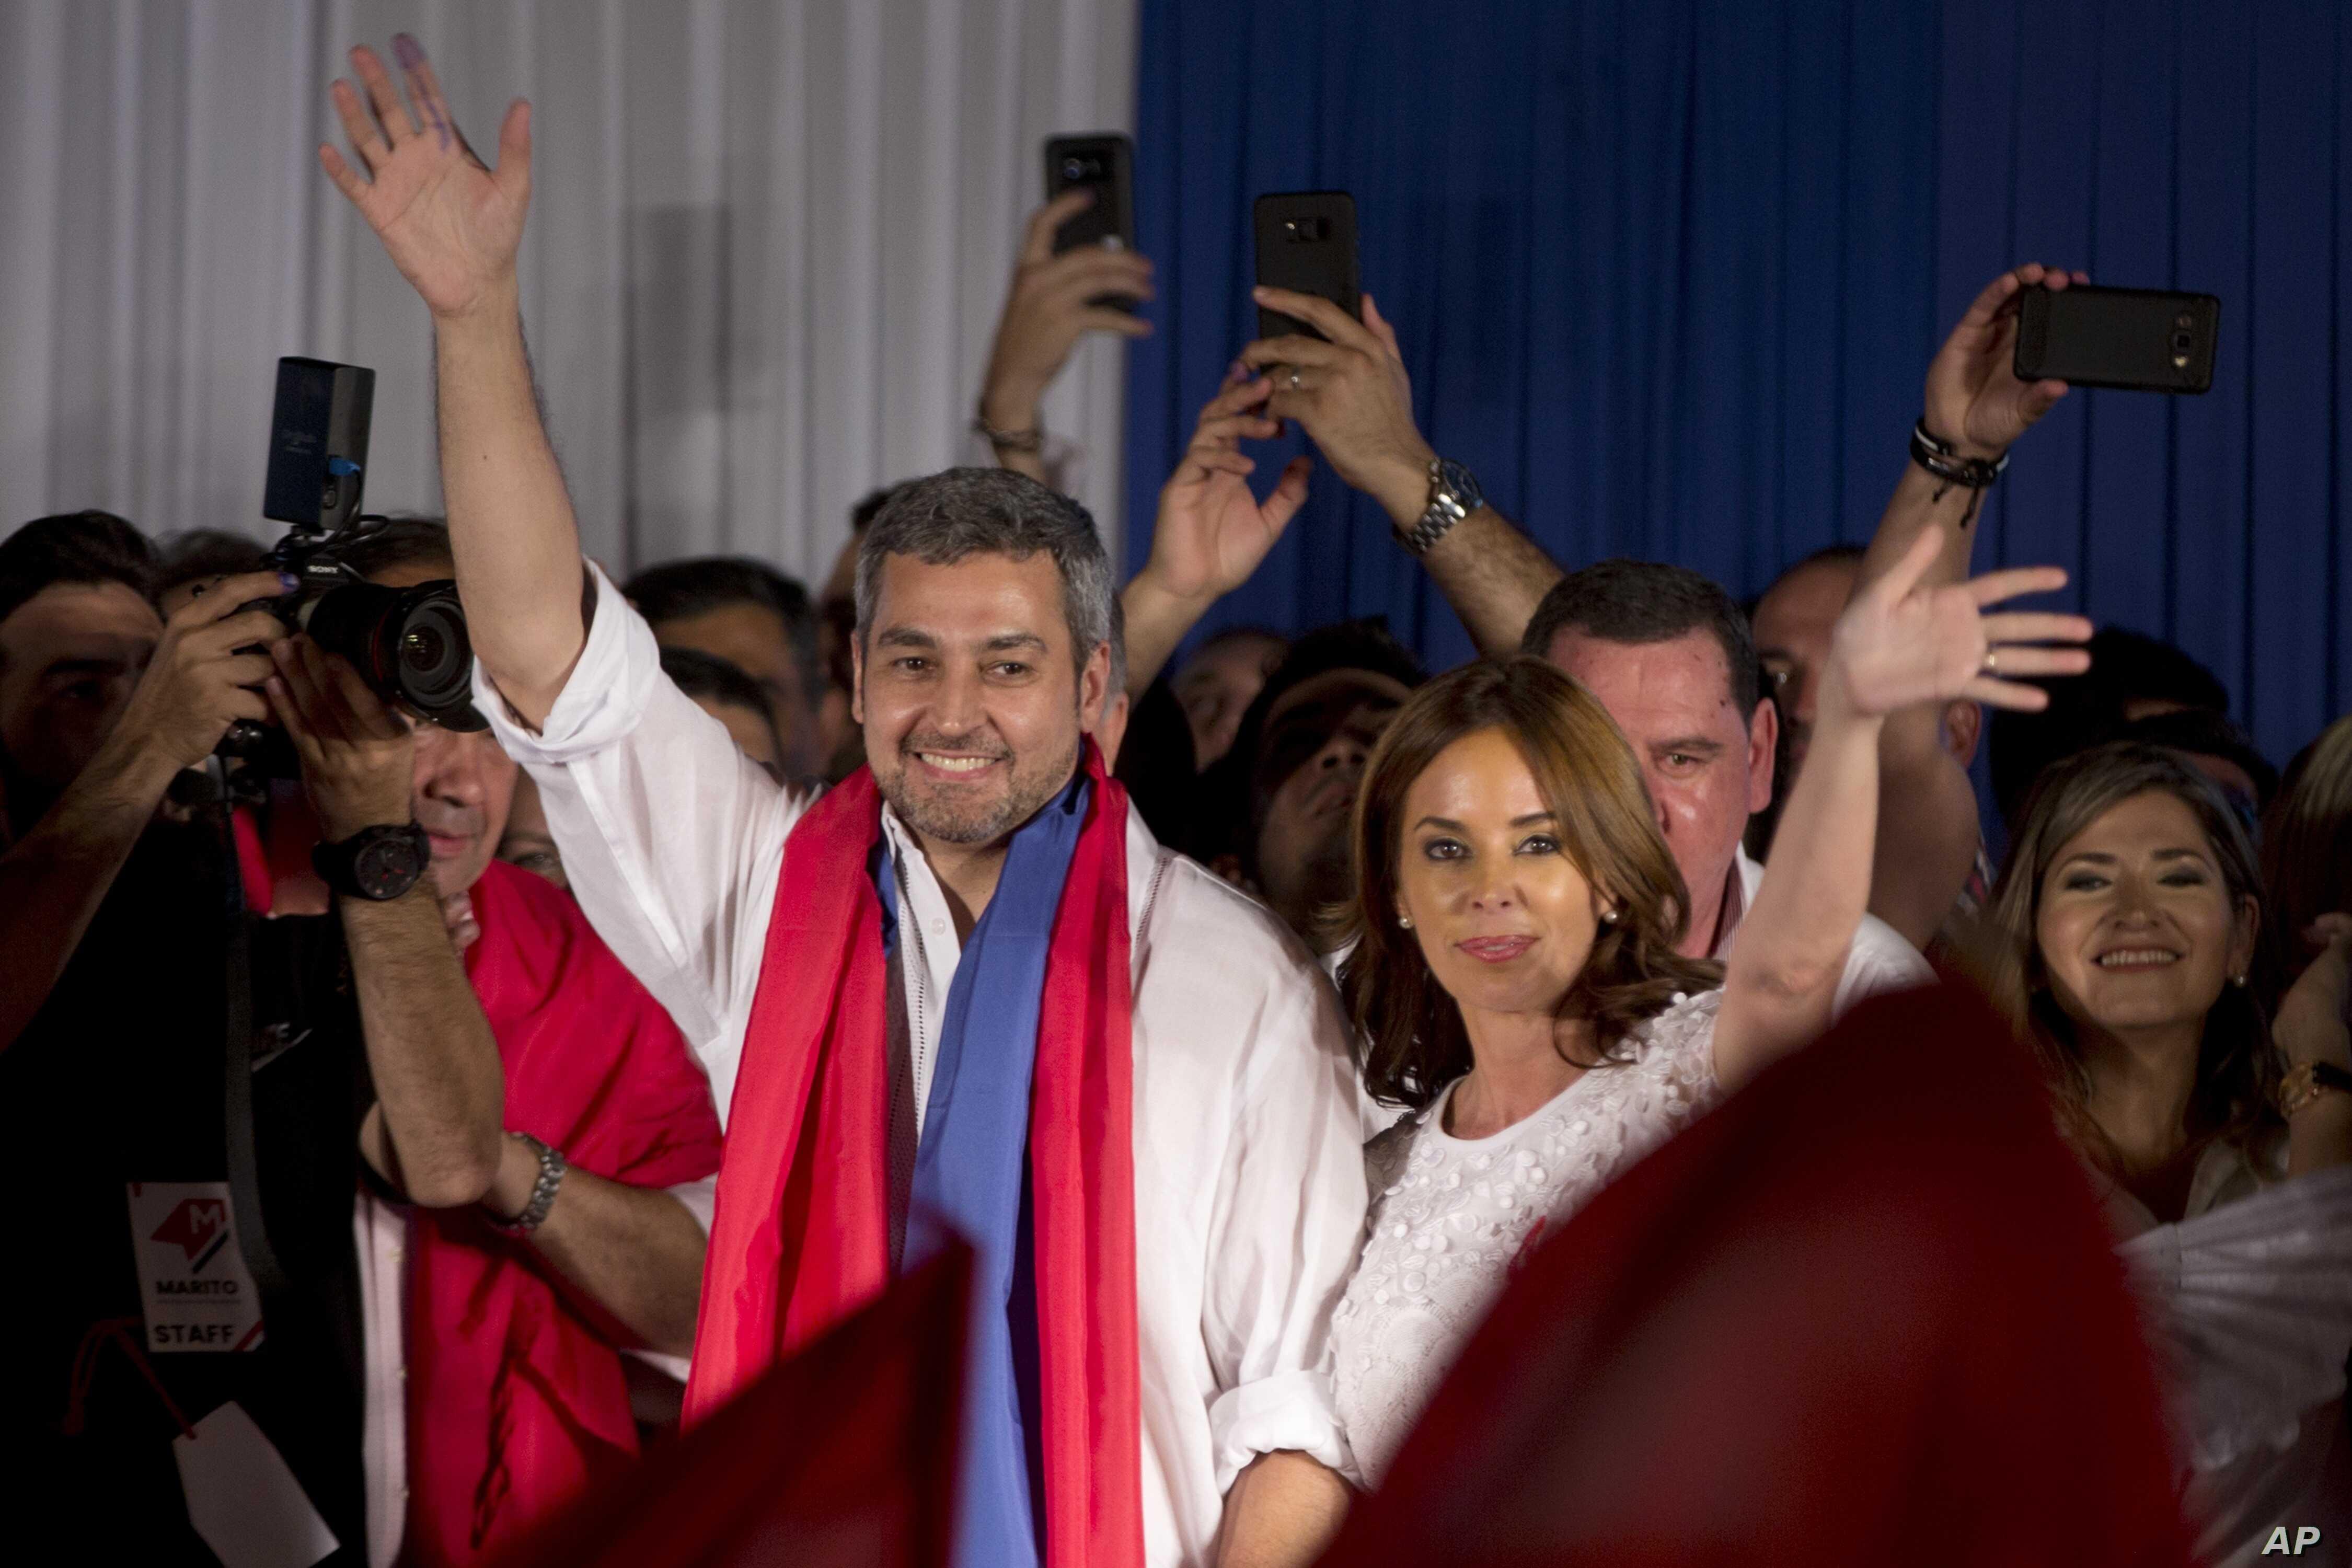 Paraguay's President Elect Mario Abdo Benitez. left, of Colorado Party, and his wife Silvana Lopez Moreira wave at supporters during celebrations at the party headquarter's in Asuncion, Paraguay, Sunday, April 22, 2018.